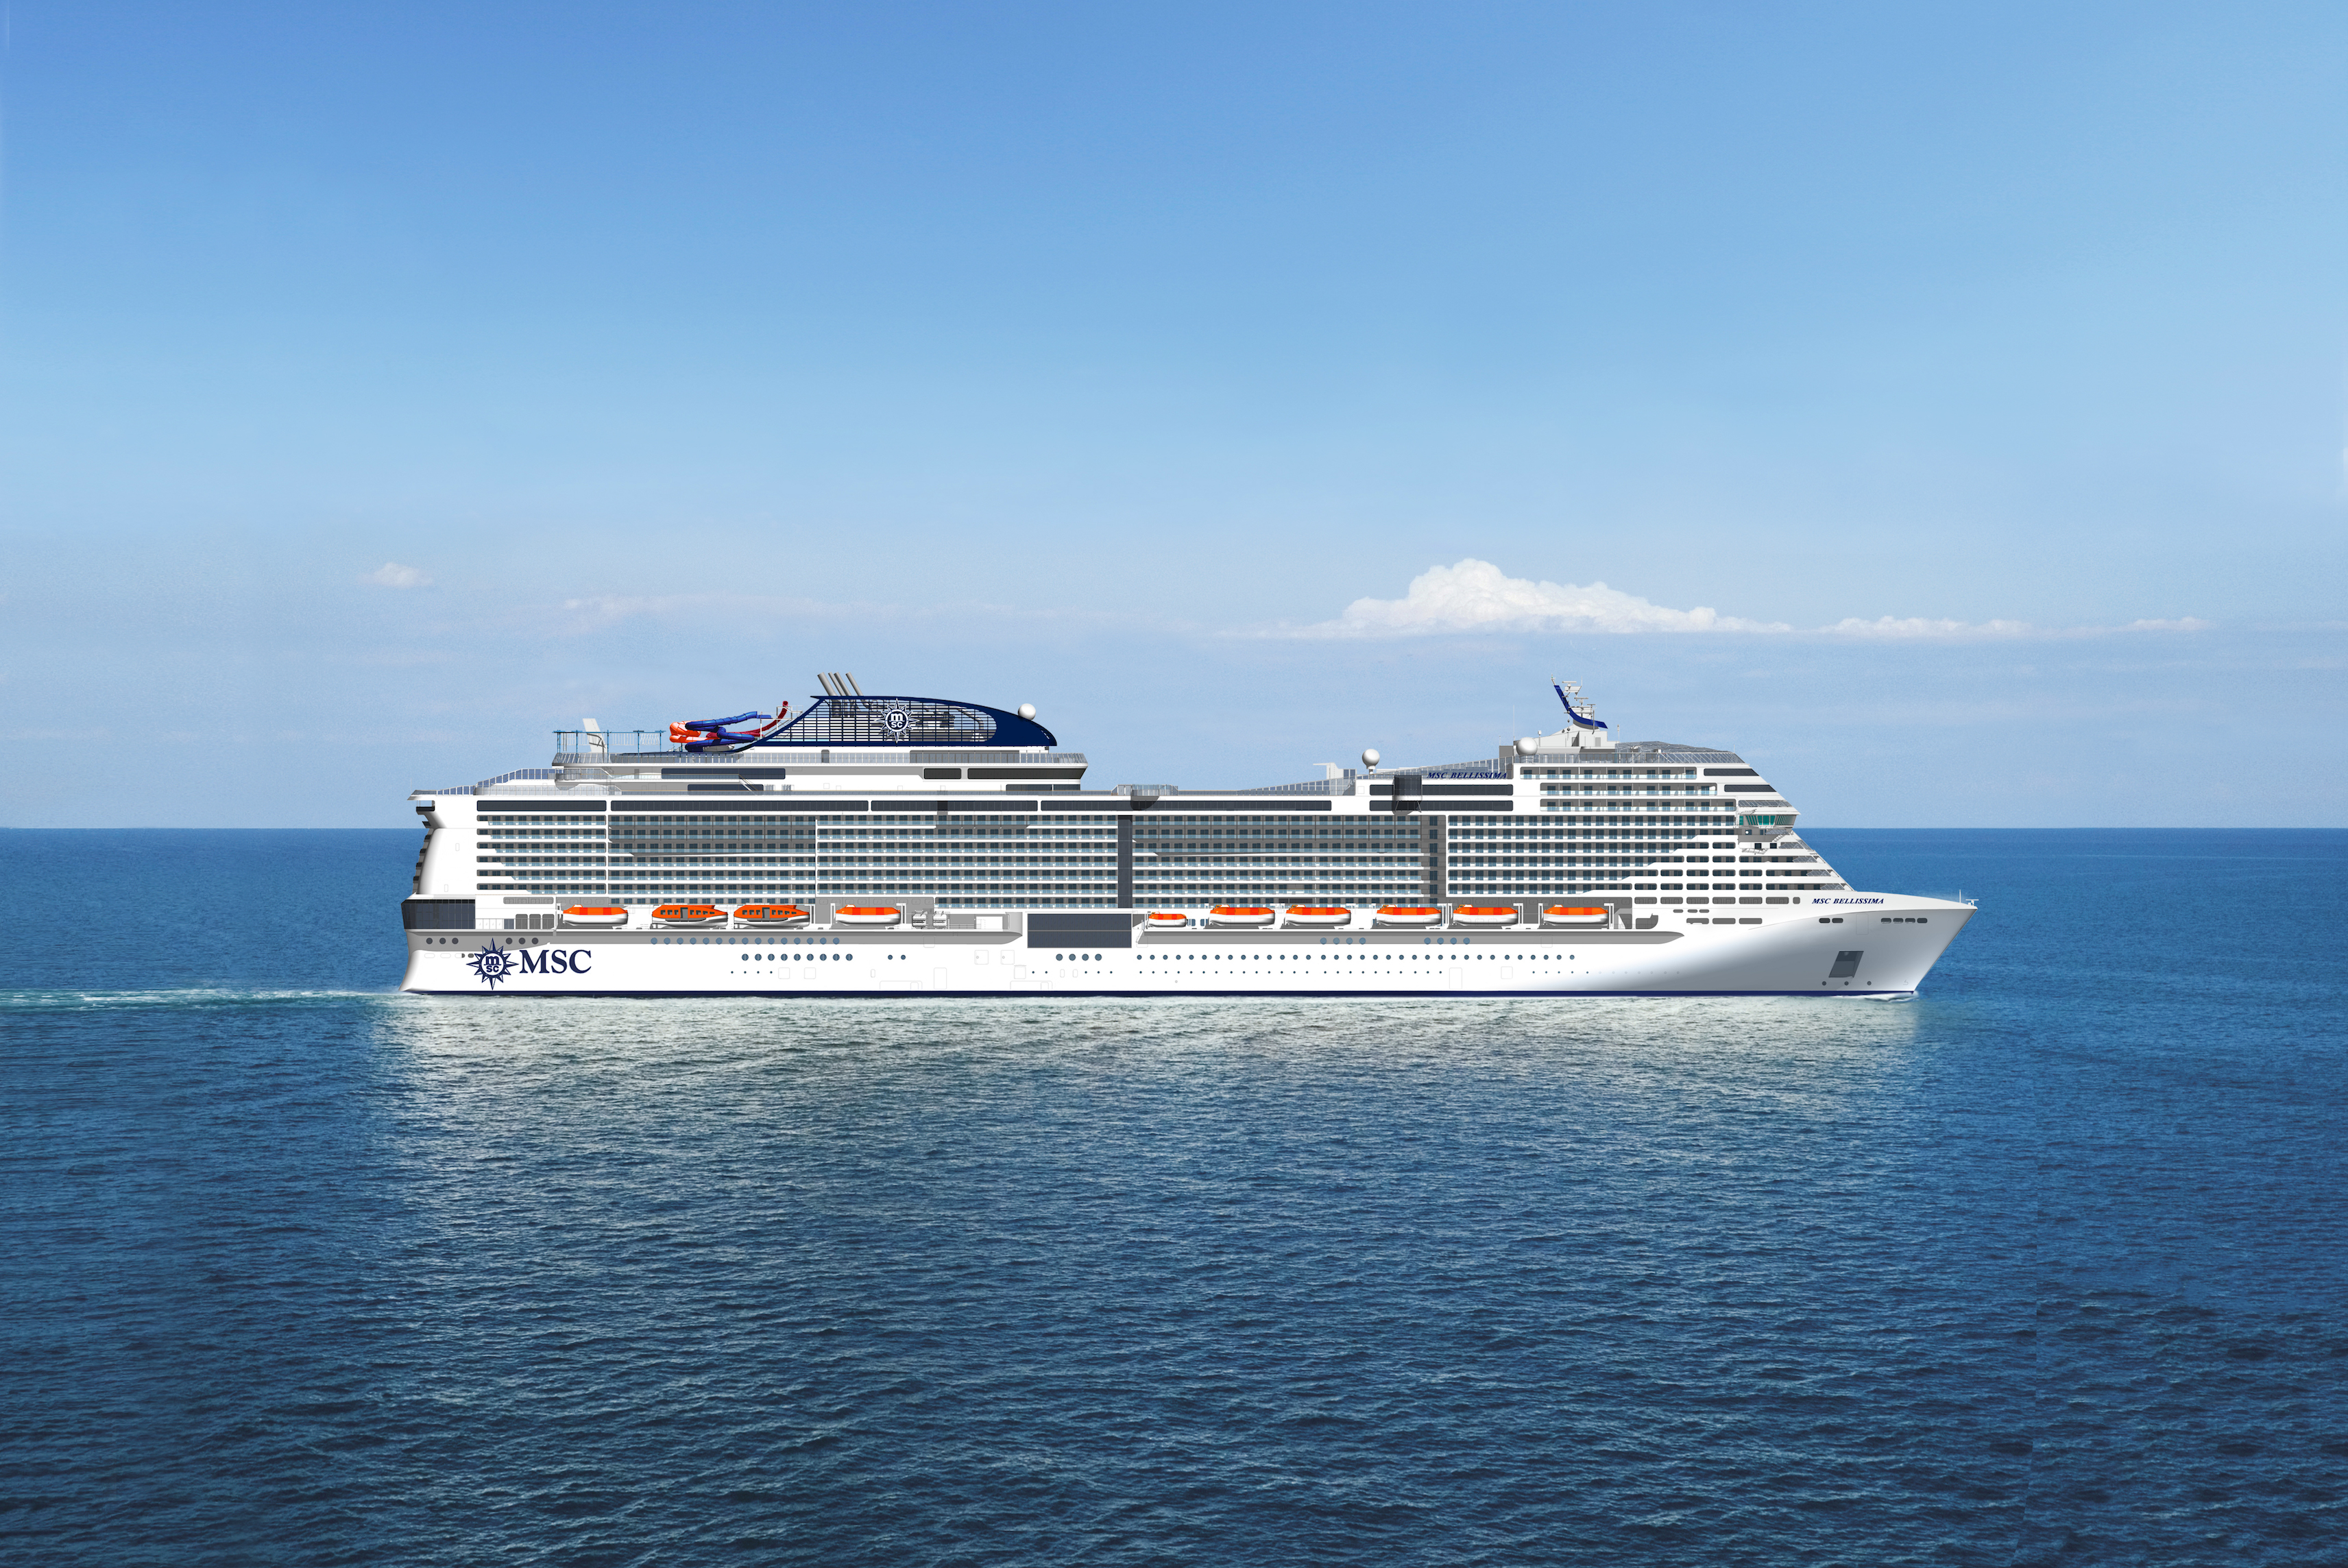 Msc Cruises Announces Msc Bellissima Will Be The Largest